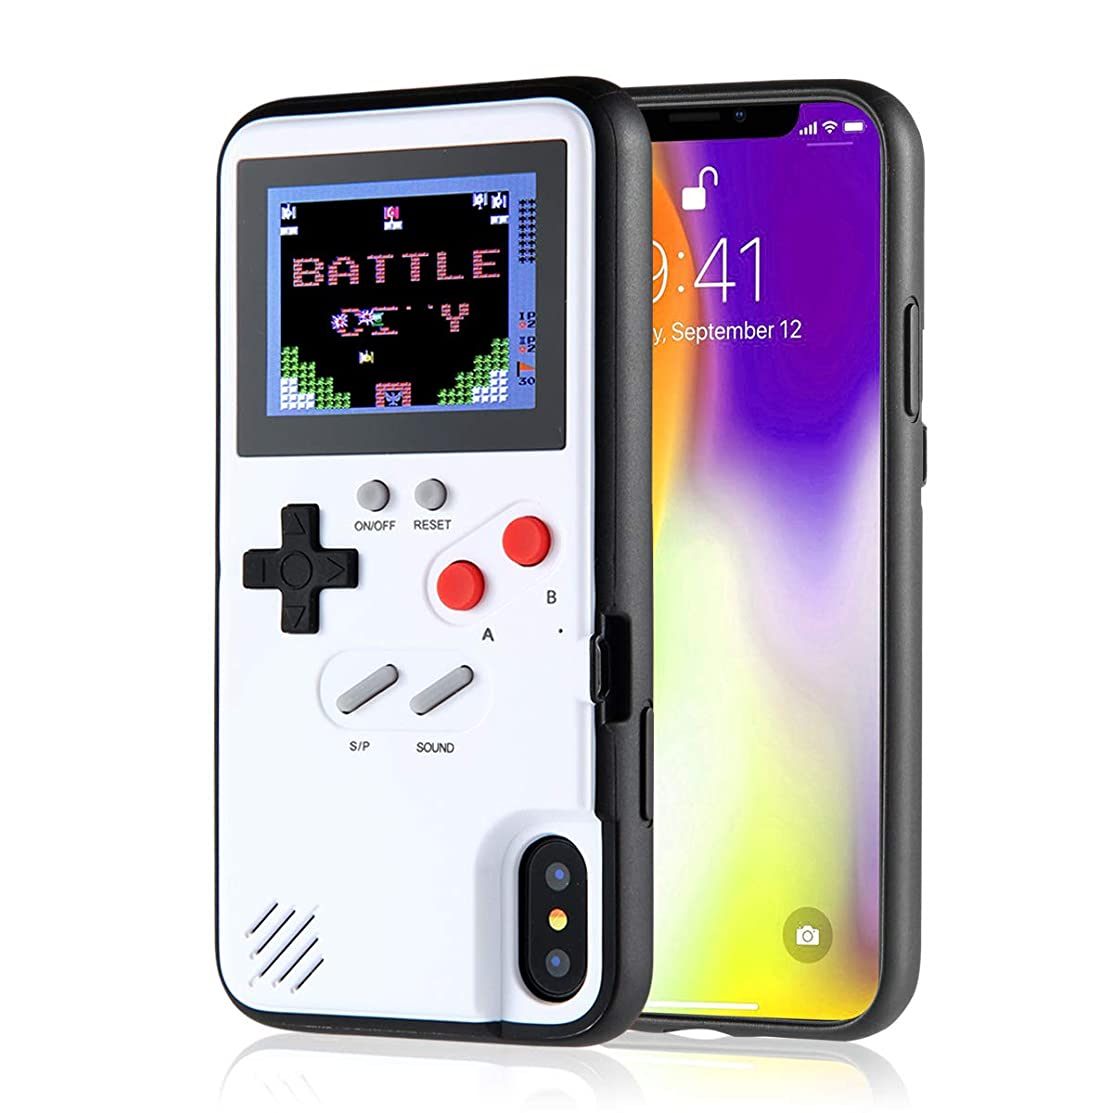 KOBWA Gameboy Case for iPhone,Retro 3D Gameboy Design Style Silicone Cover Case with 36 Small Games,Color Screen,Video Game Cover Case for iPhone X/MAX,iPhone8/8 Plus,iPhone 7/7 Plus,iPhone 6/6Plus ppqfamvkradz06